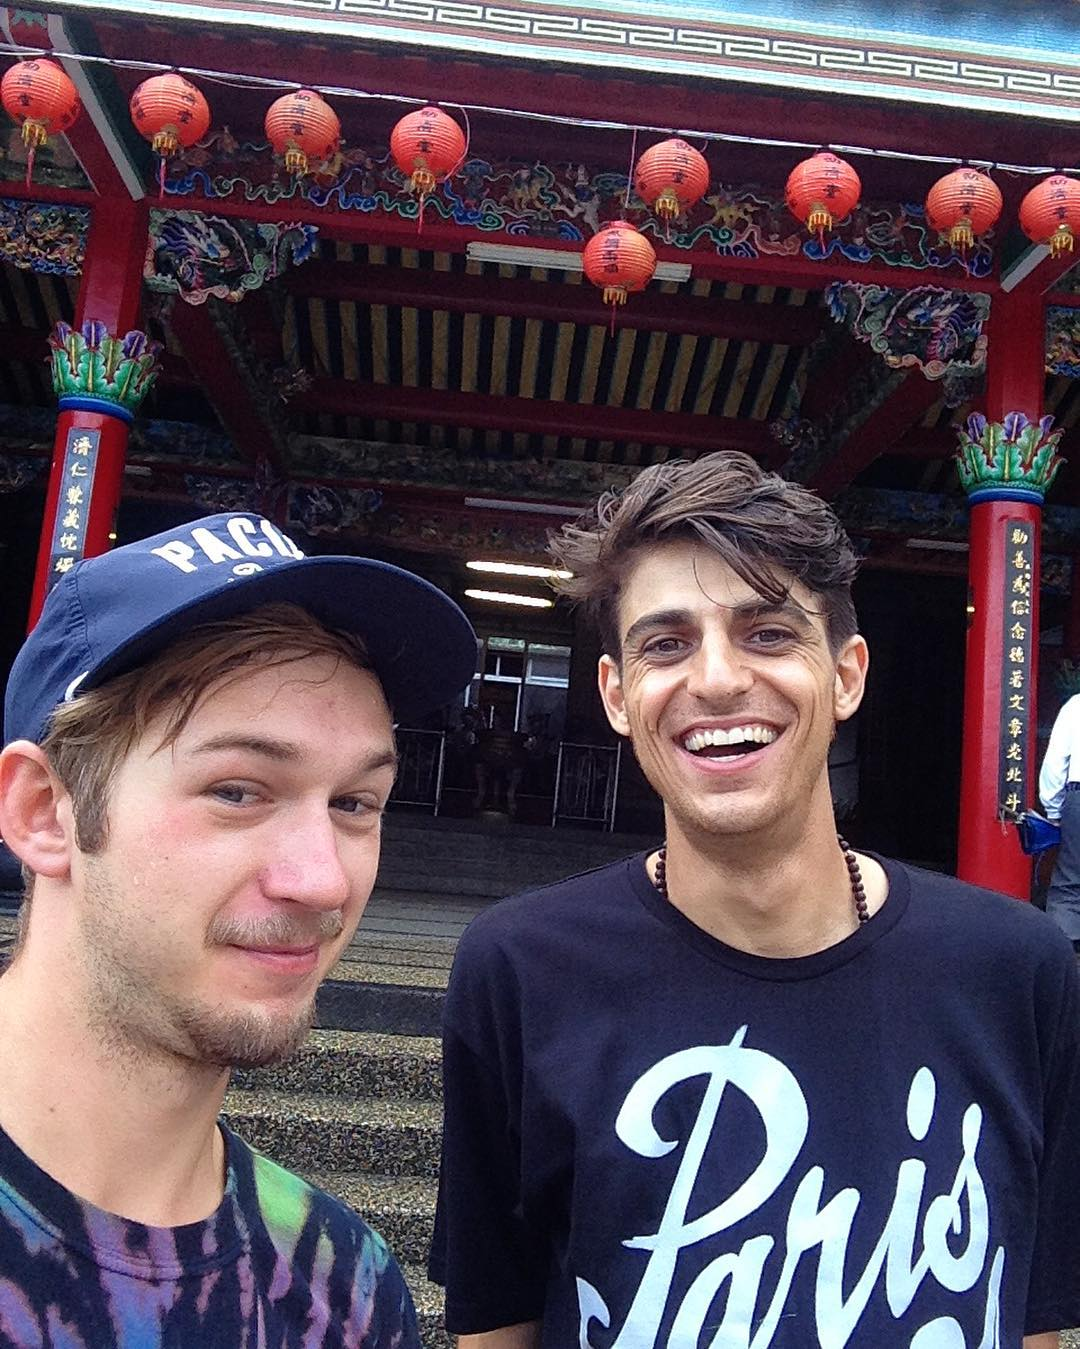 The boys made it to Taiwan! Levi Green (@levipurple) and Ari Chamasmany (@ari_shark ) each took a quick 13 hour flight out to Taipei for the #taiwanlongboardfestival! It's going to be a wild ride on the other side of the globe for these guys....